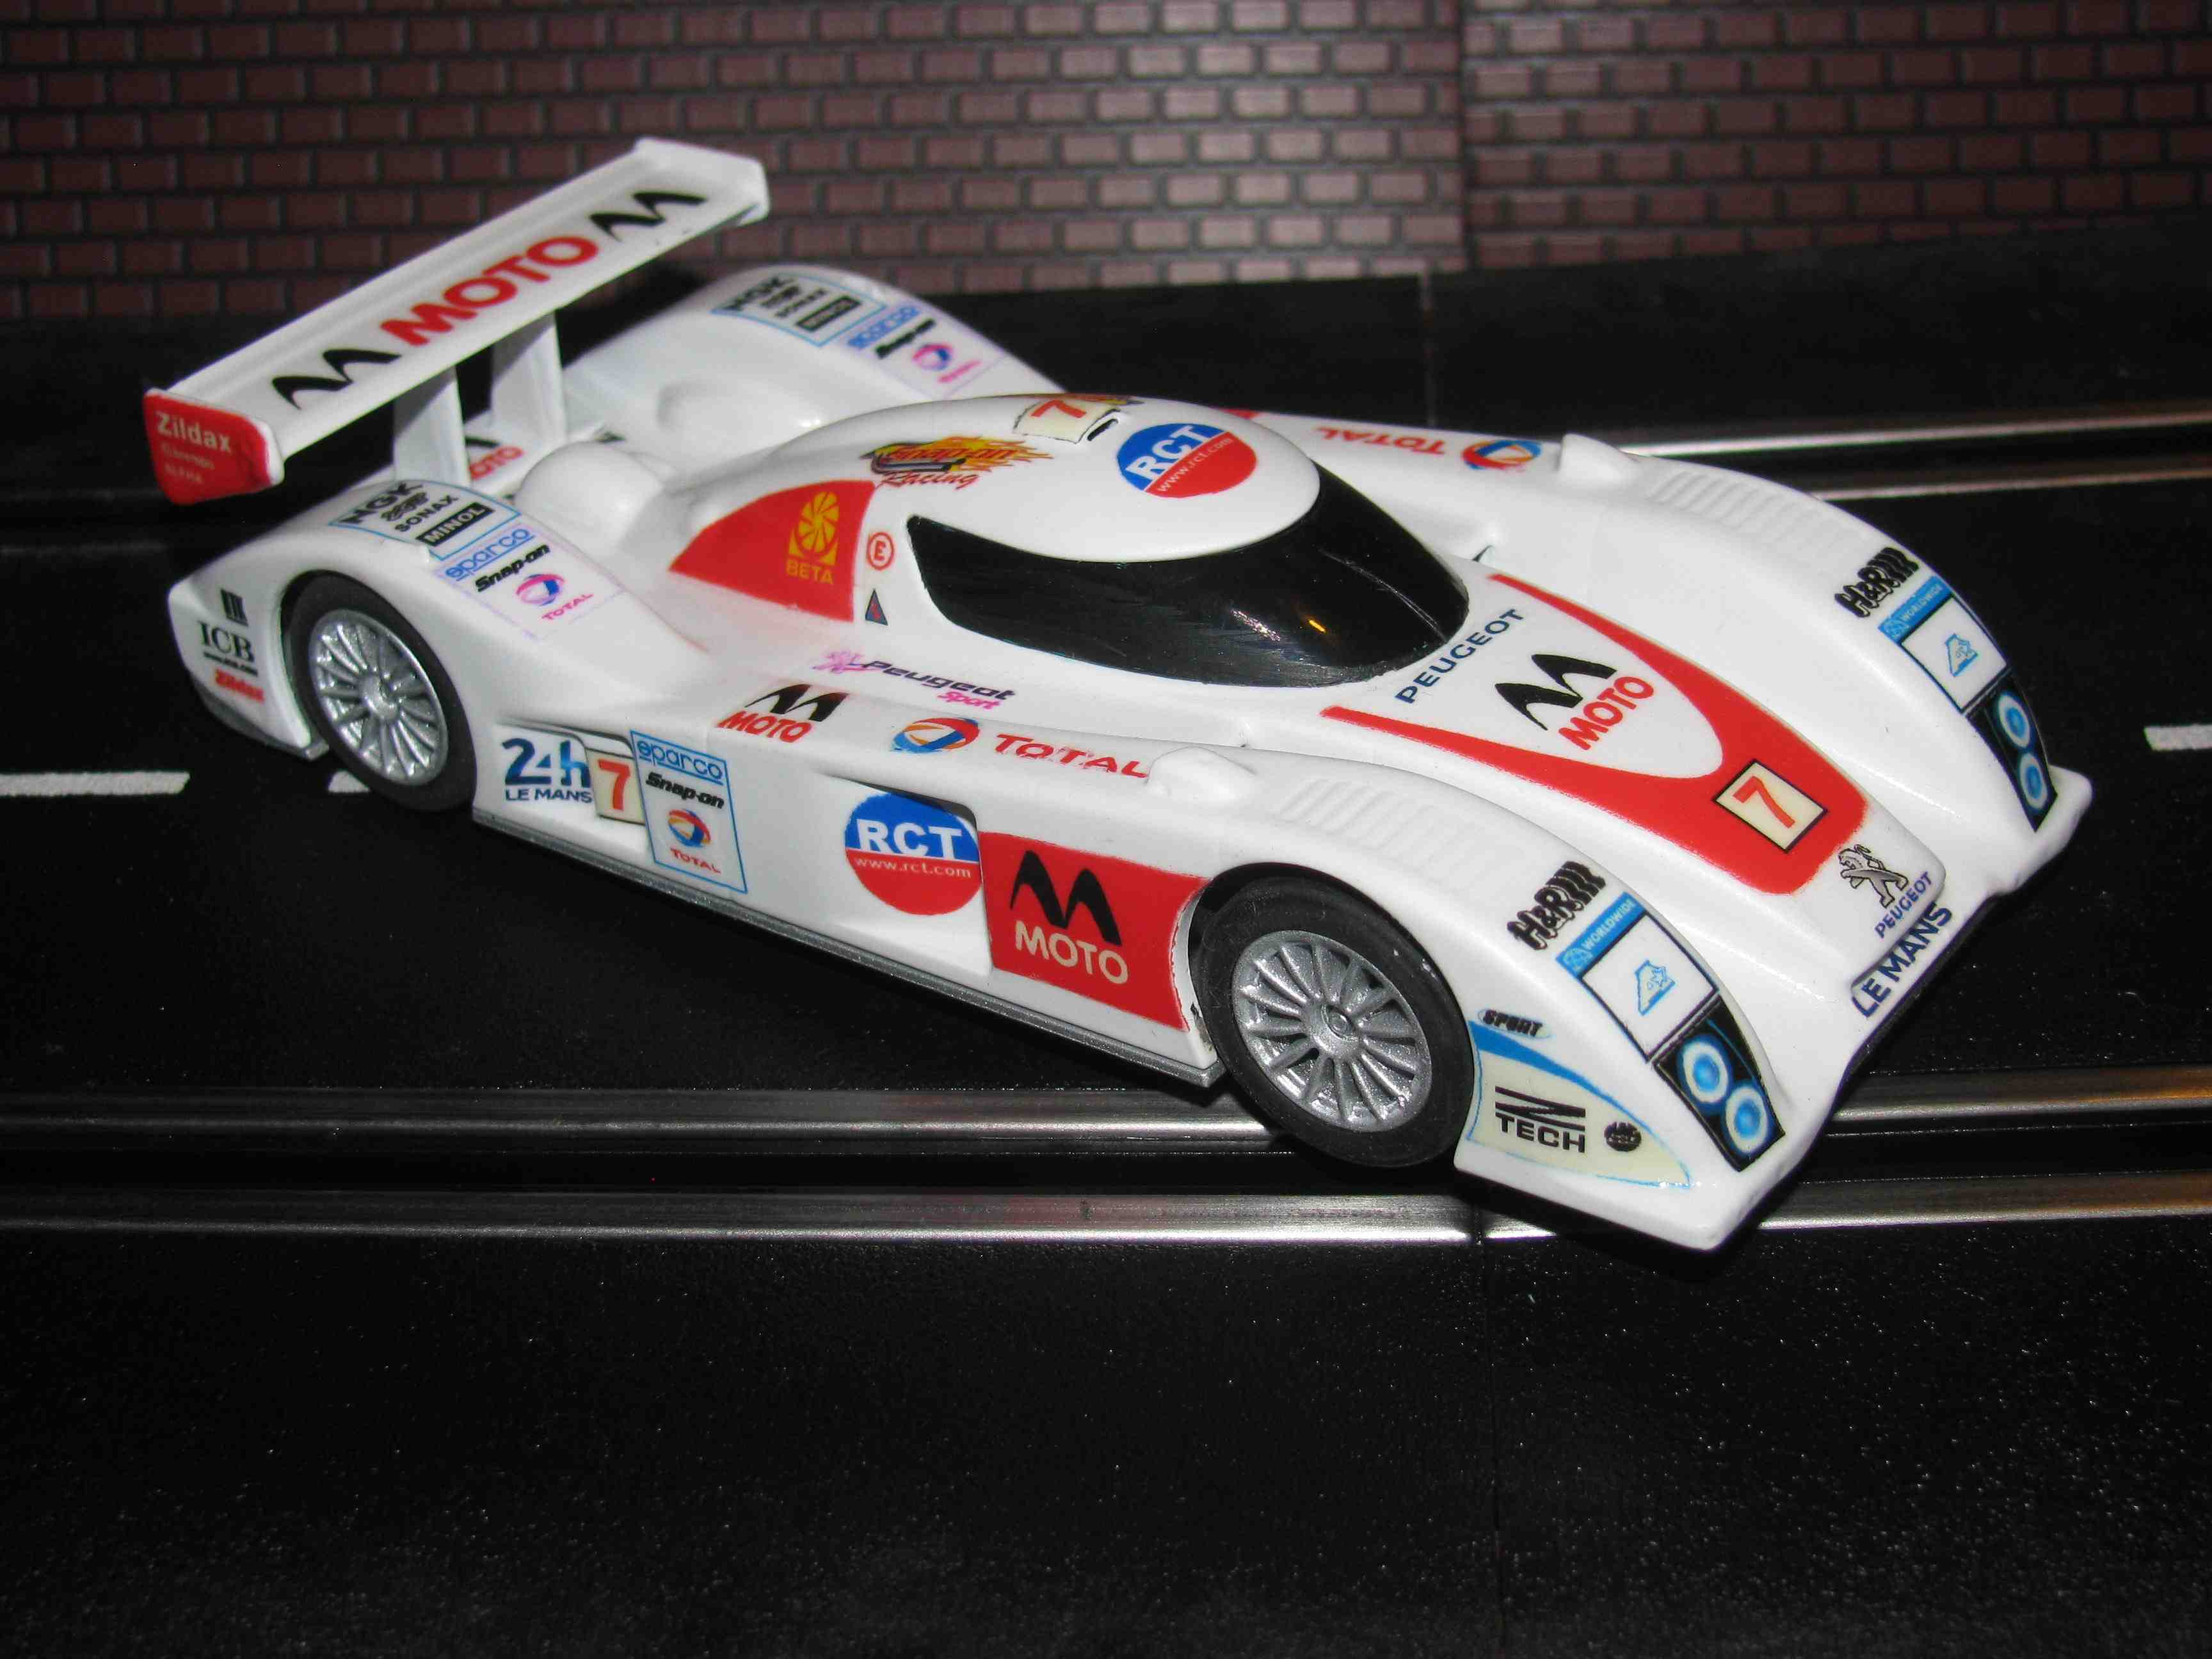 * SOLD * Hornby LeMans LMPT MOTO Slot Car Racer 1/32 Scale – Car 7 - (CUSTOM LIVERY)